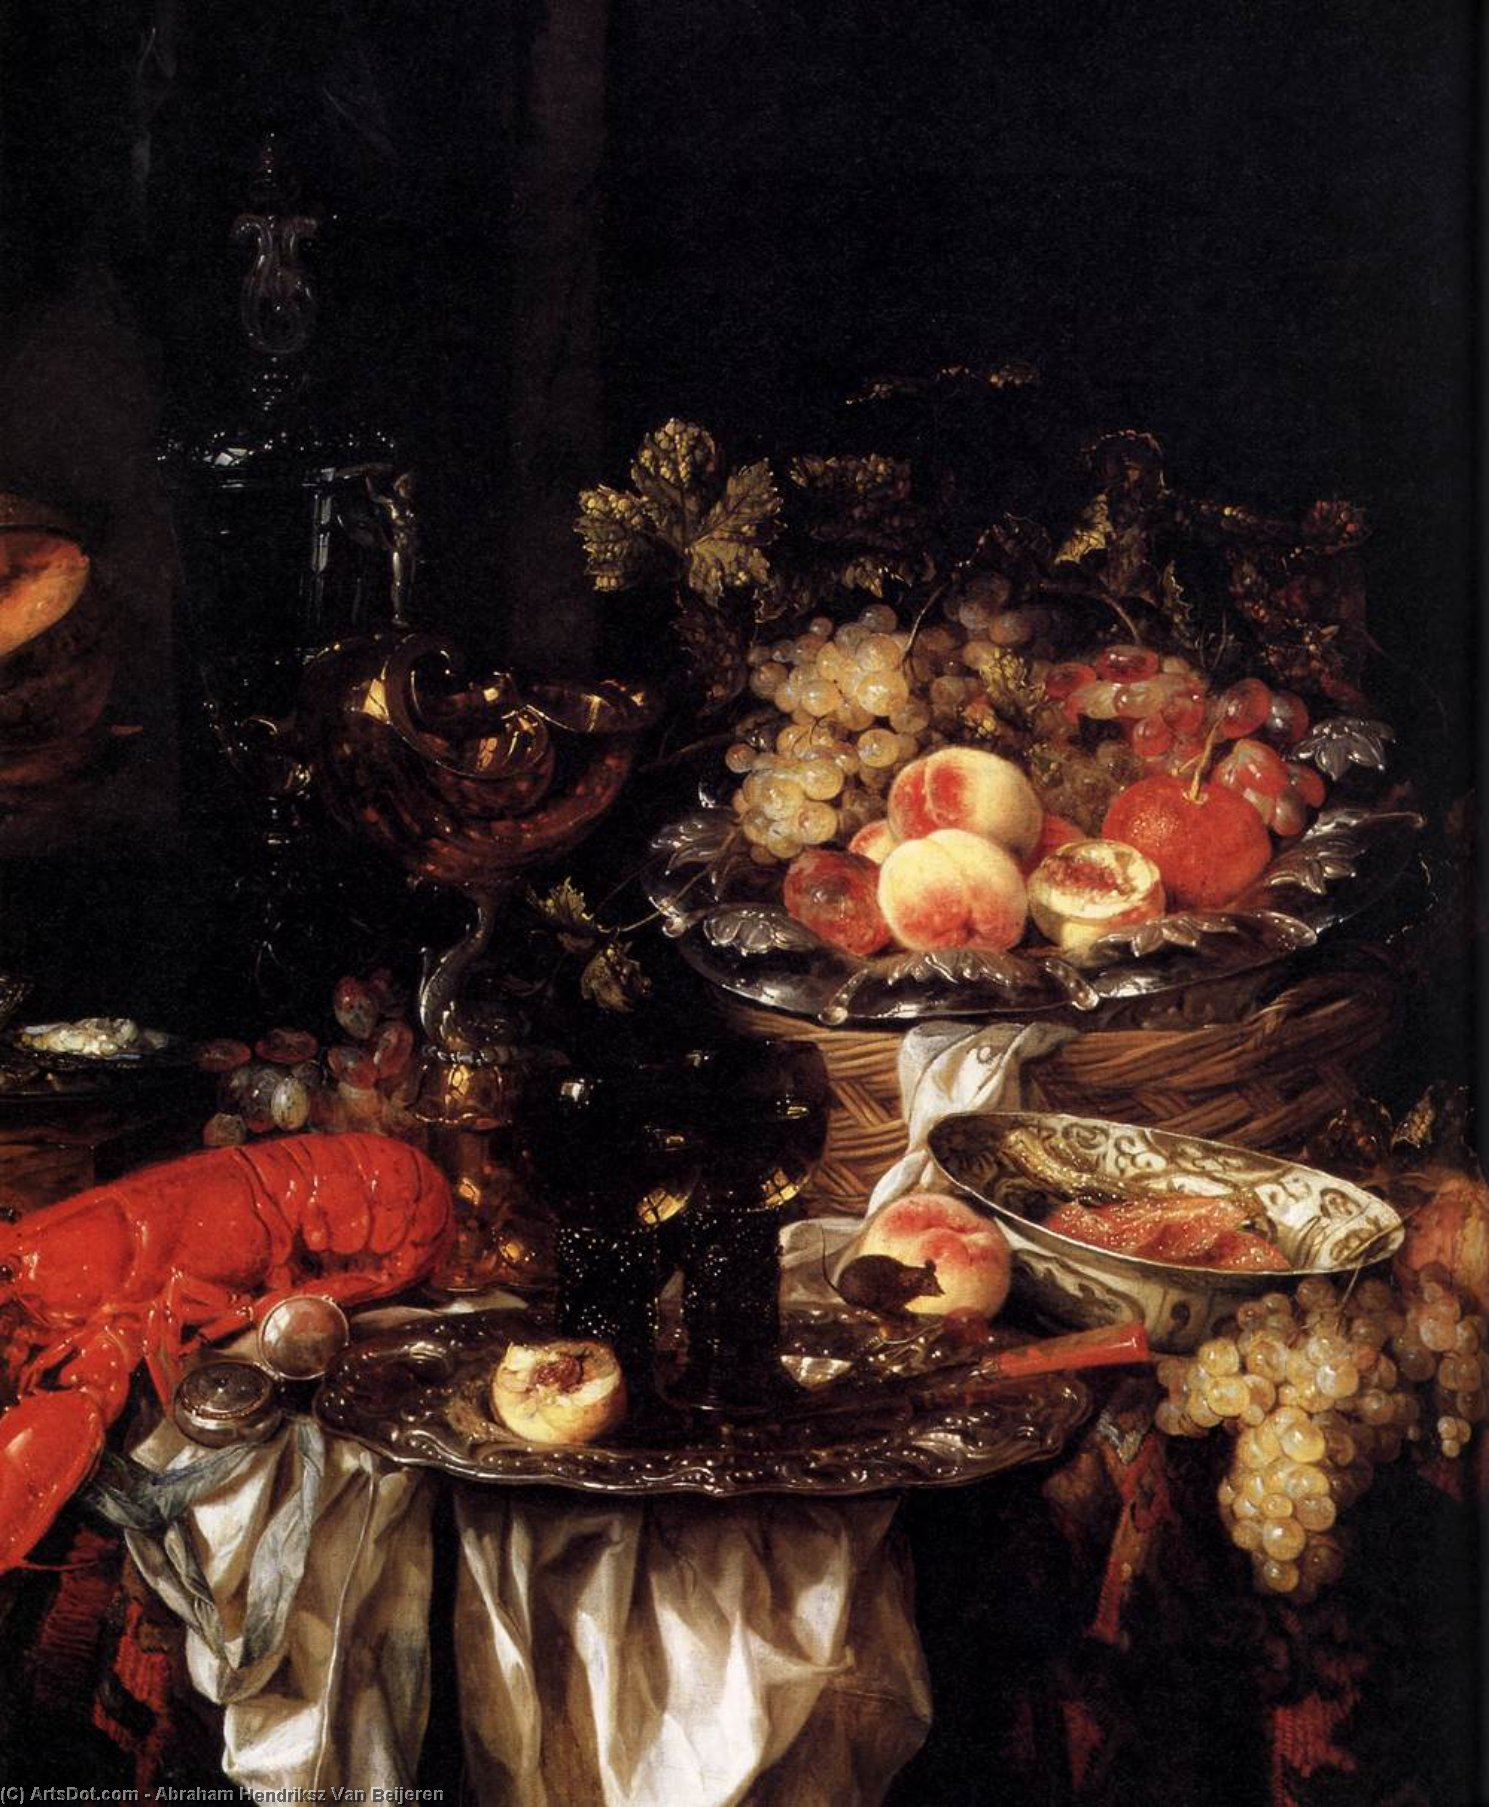 Banquet Still-Life with a Mouse (detail), Oil On Canvas by Abraham Hendriksz Van Beijeren (1620-1690, Netherlands)